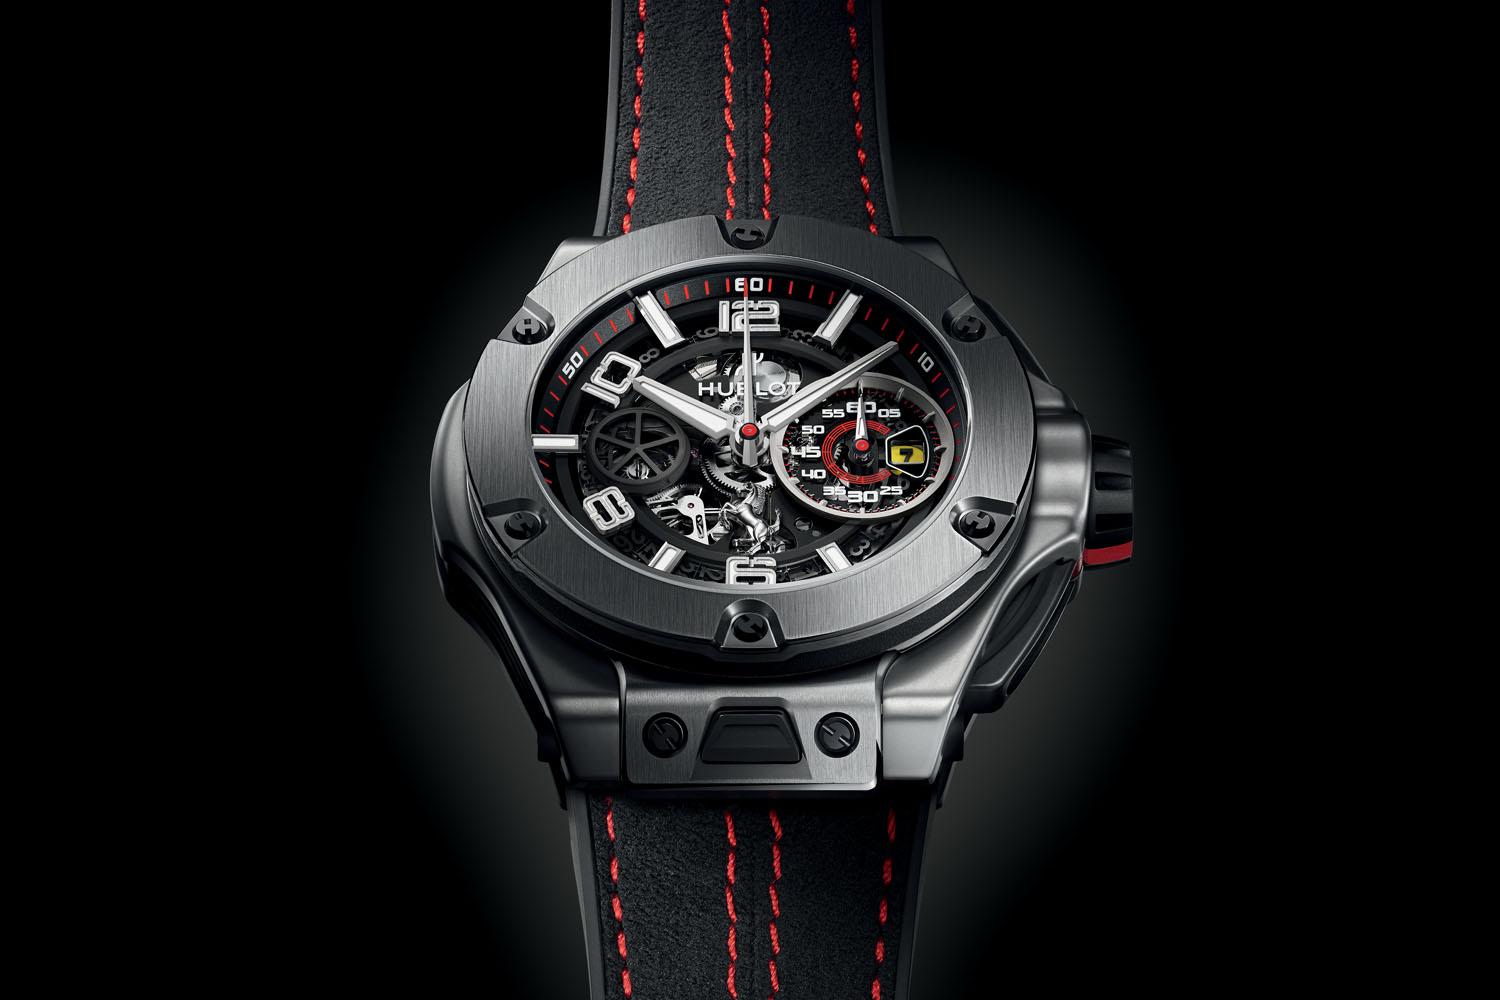 Hublot Introduces 3 New Editions Of Their Bold And Sporty Big Bang Ferrari Unico Best Richard Mille Replica Watches With Cheap Price Online Sale